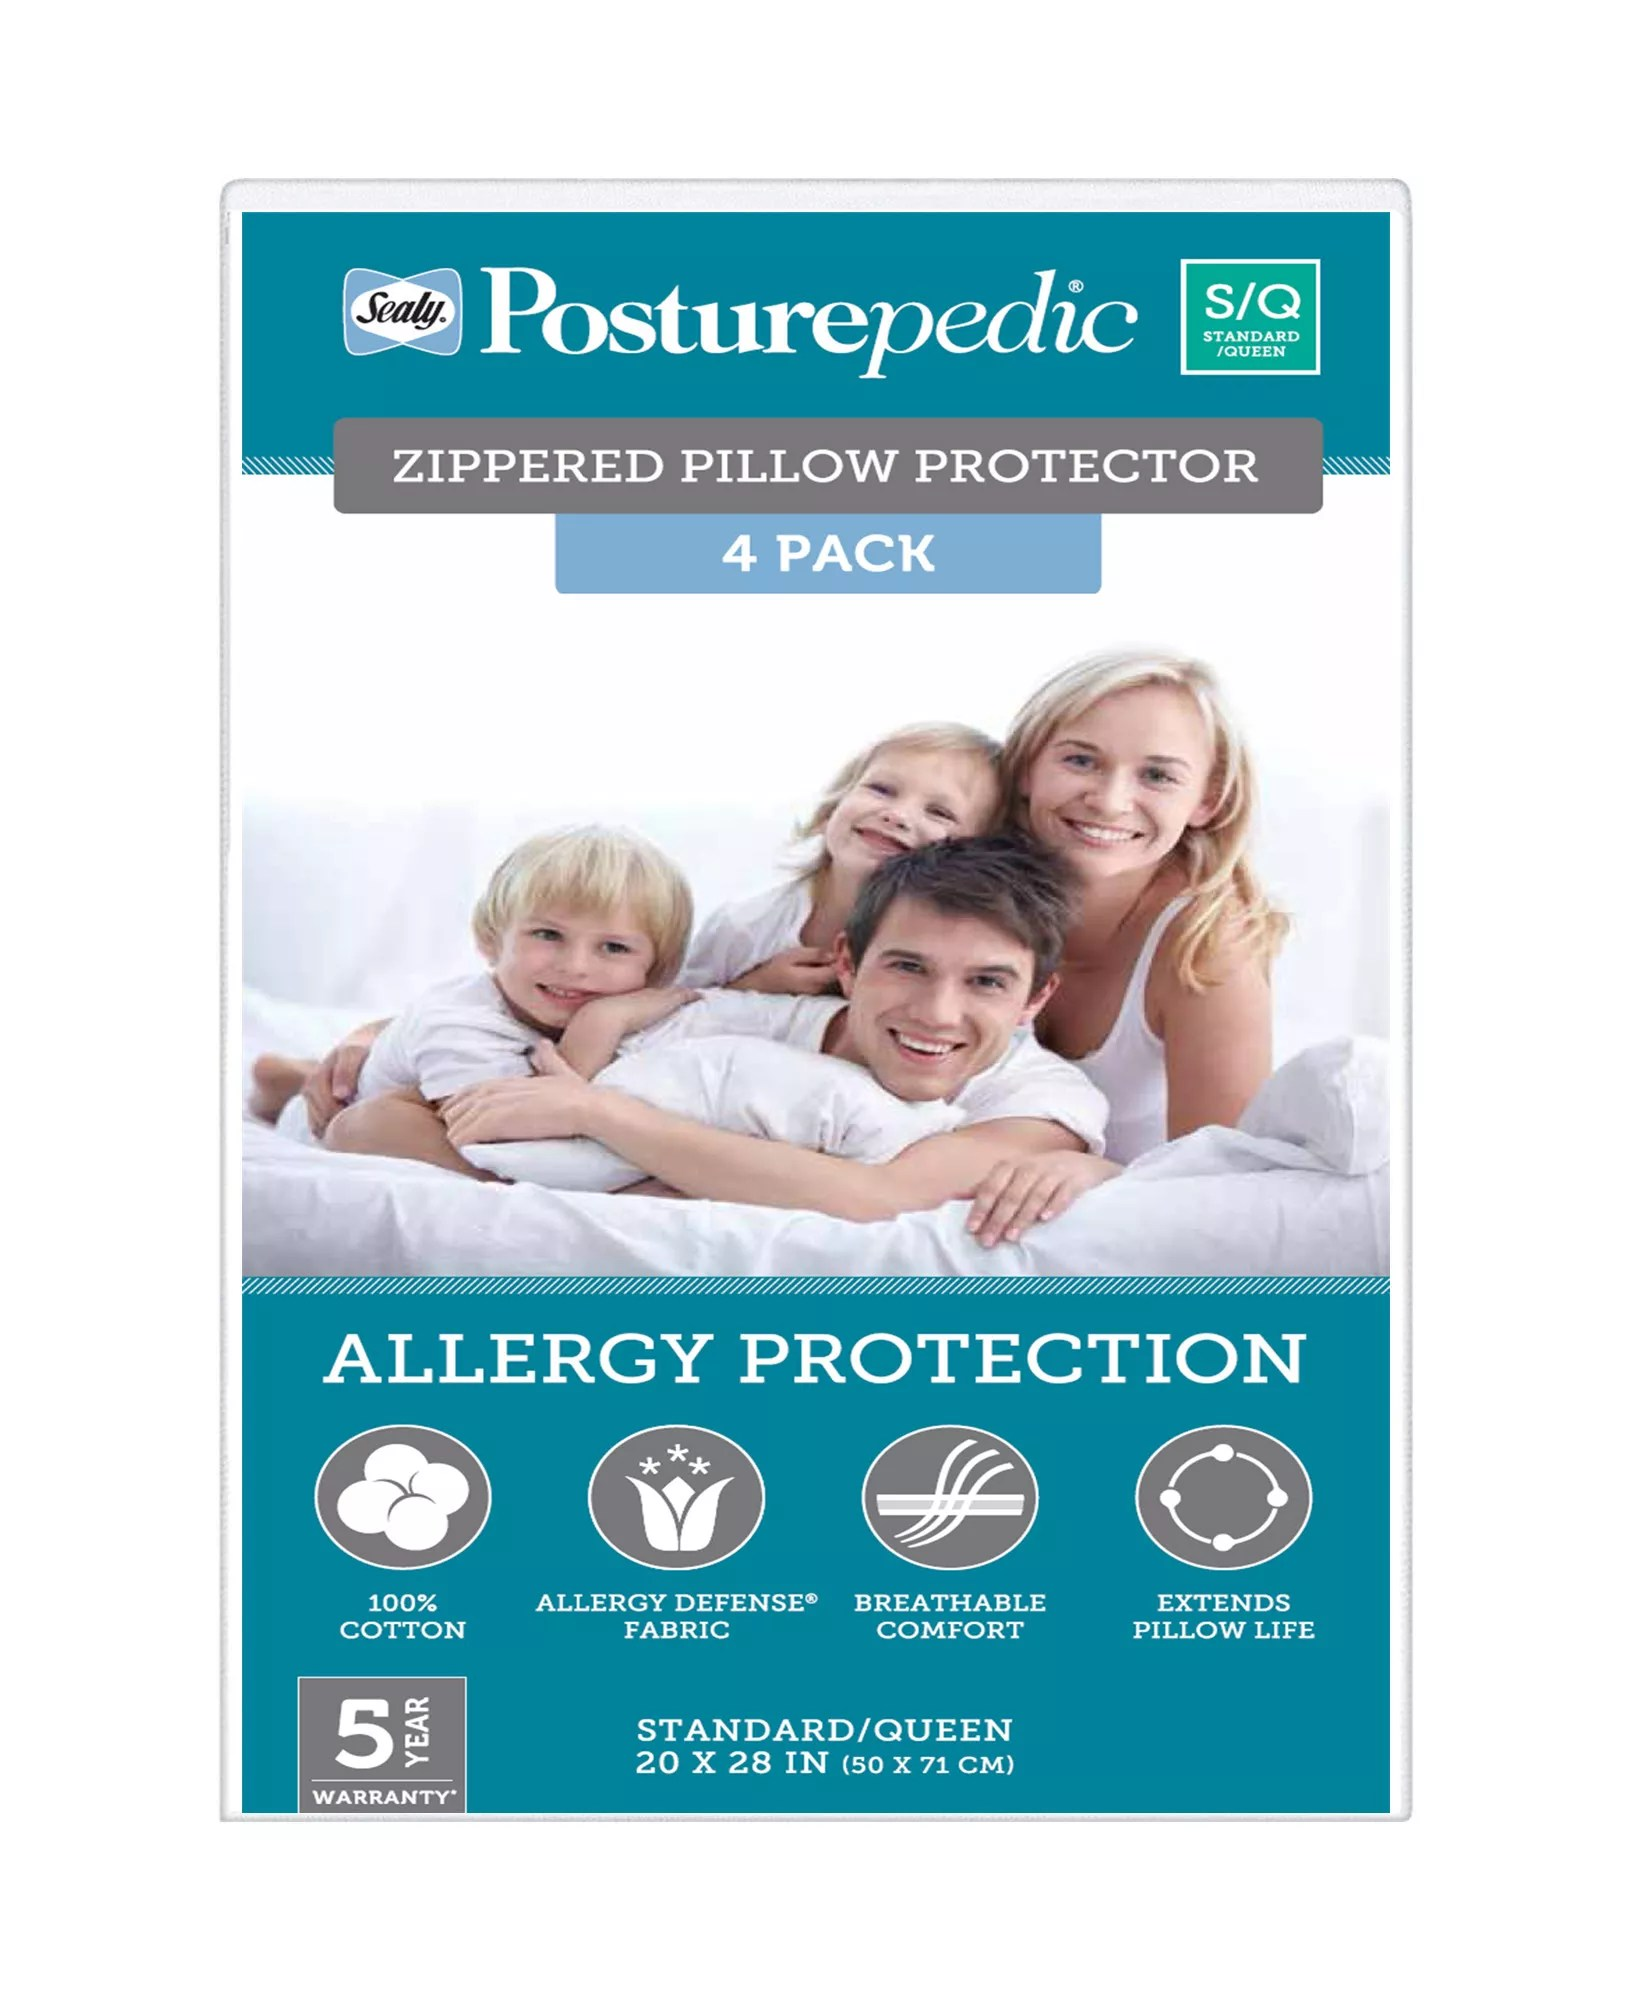 sealy posturepedic standard queen size zippered pillow protector 4 pk